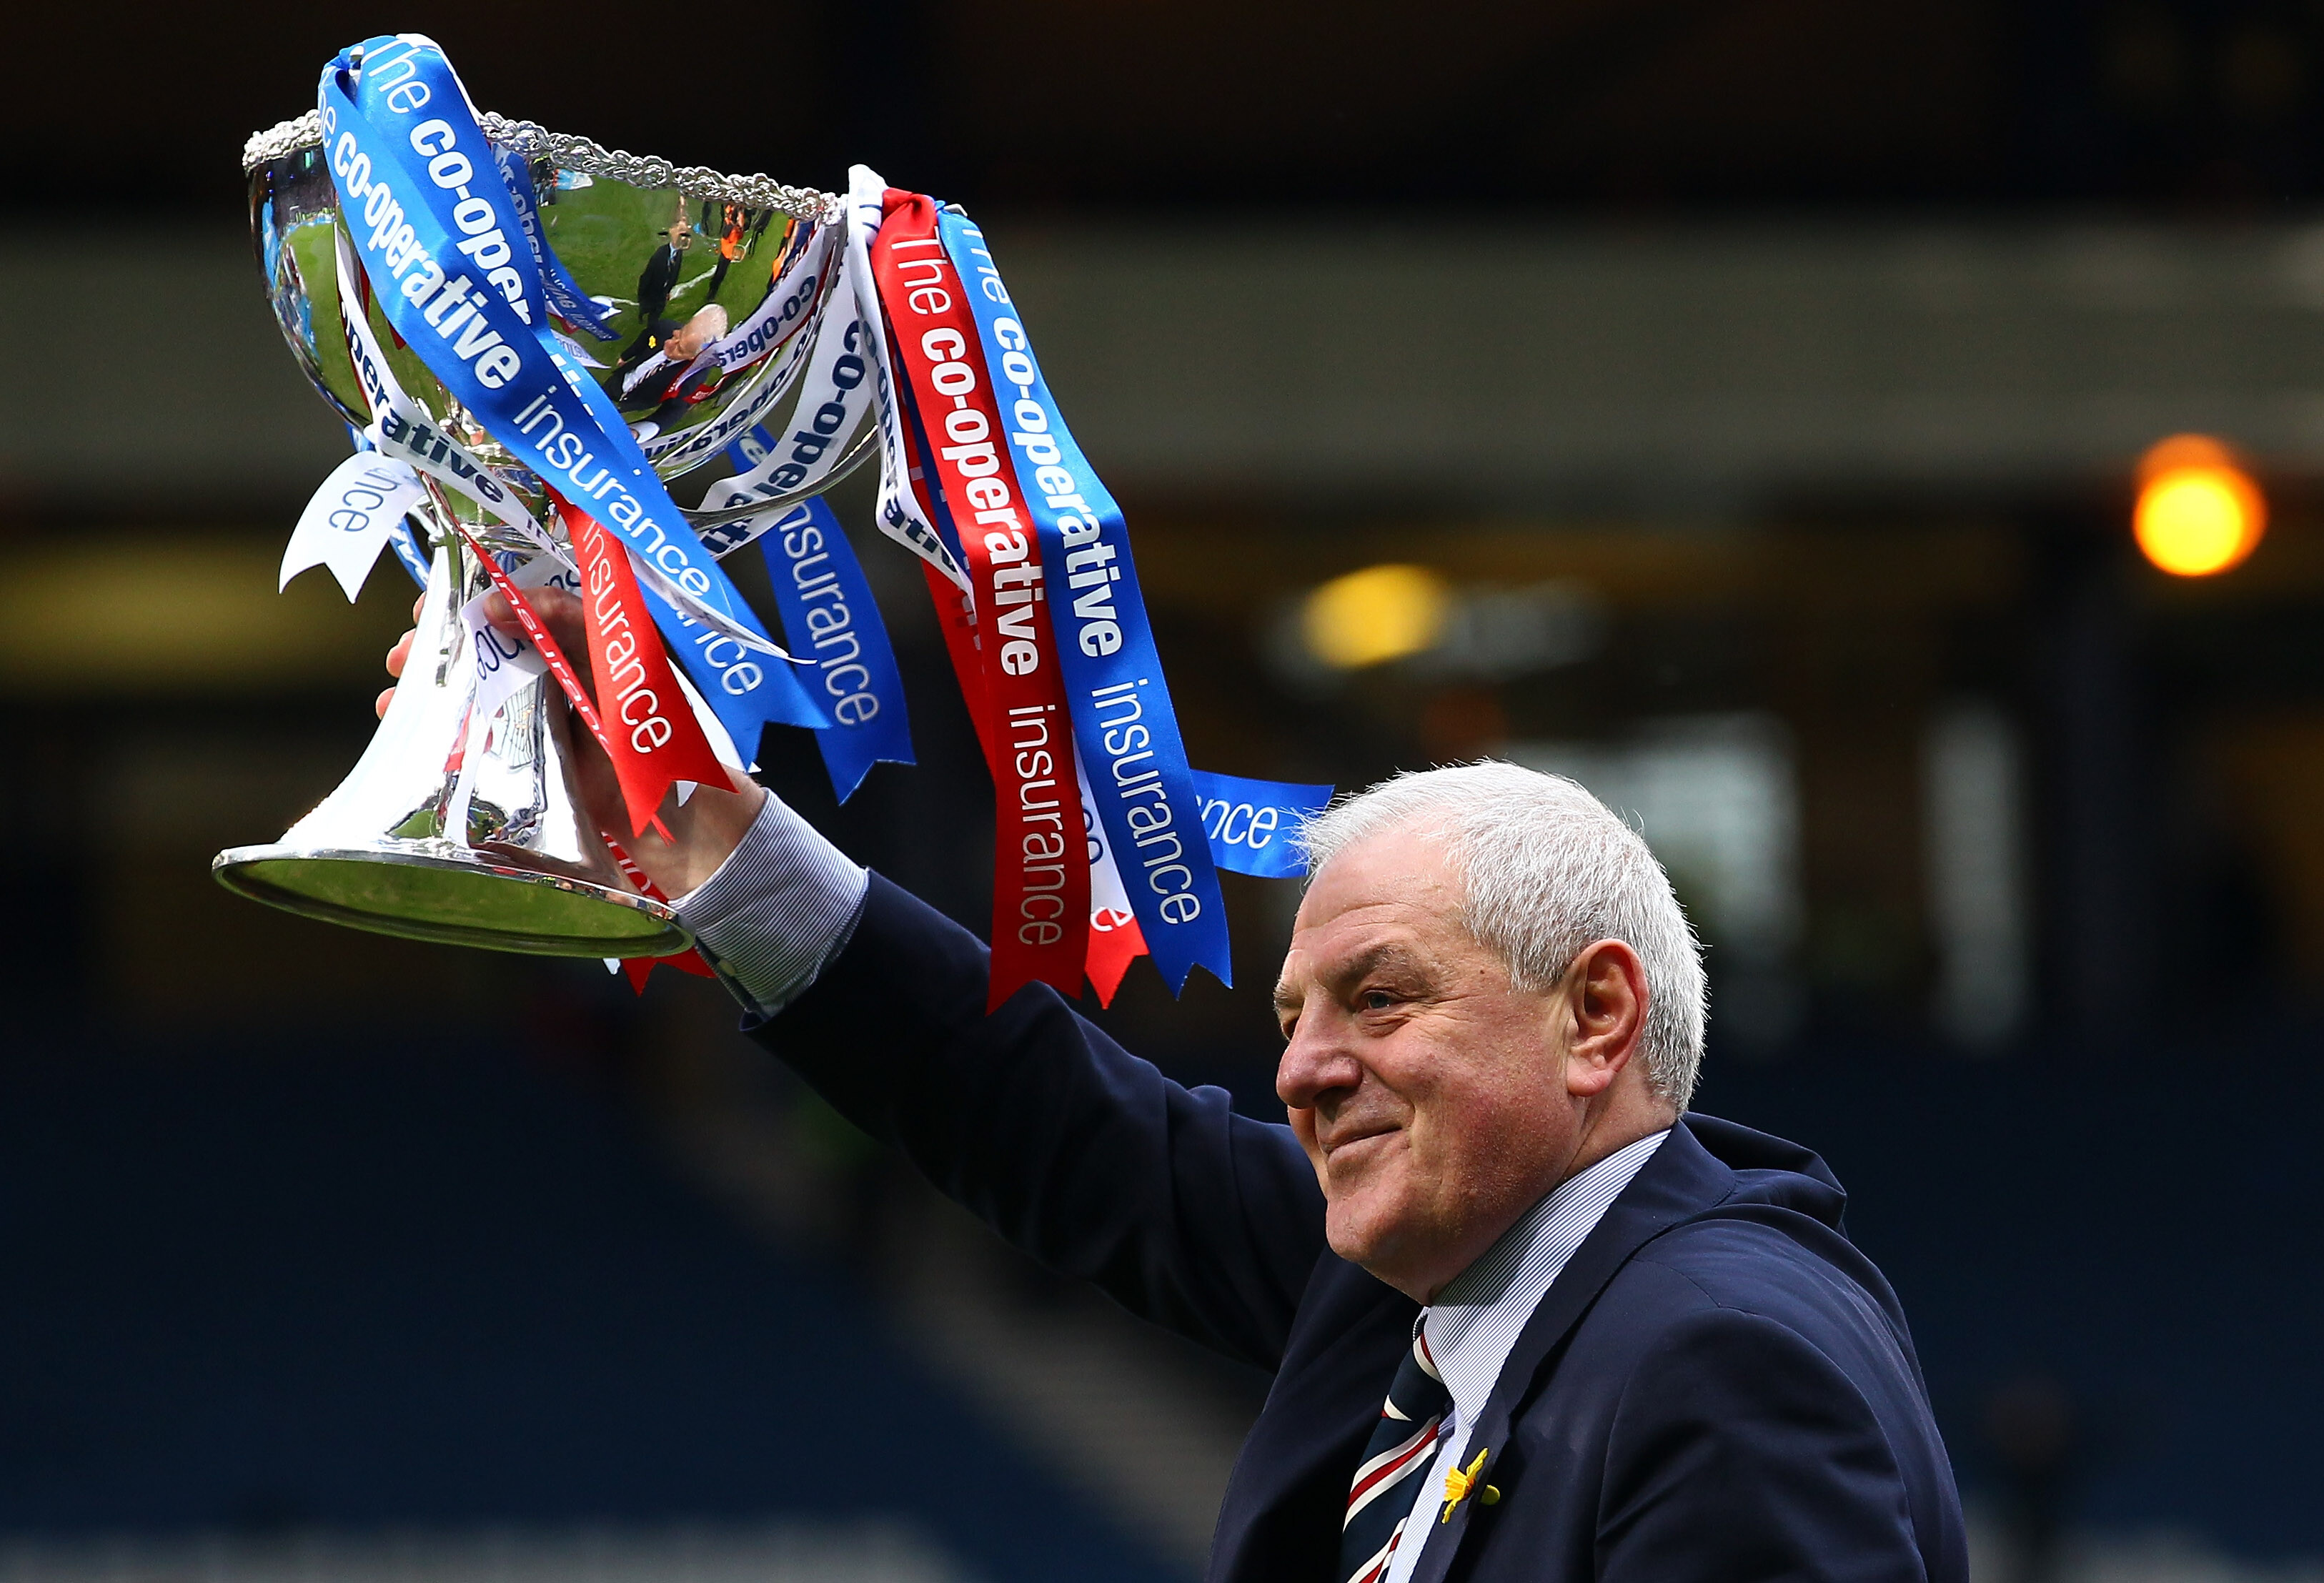 Walter Smith: Former Rangers manager dies at the age of 73